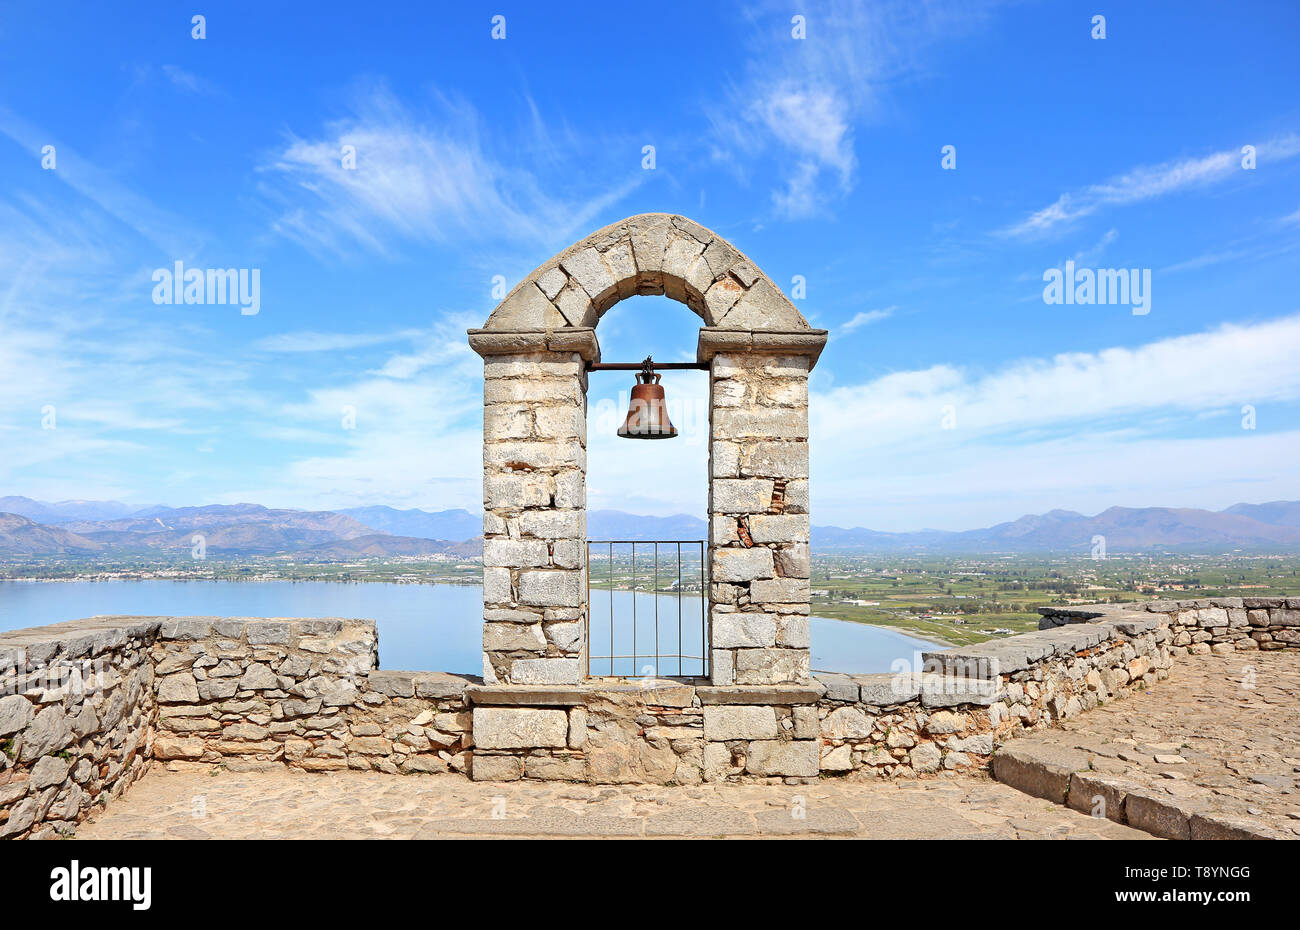 stony belfry at the top of Palamidi fortress Nafplio Greece - Stock Image